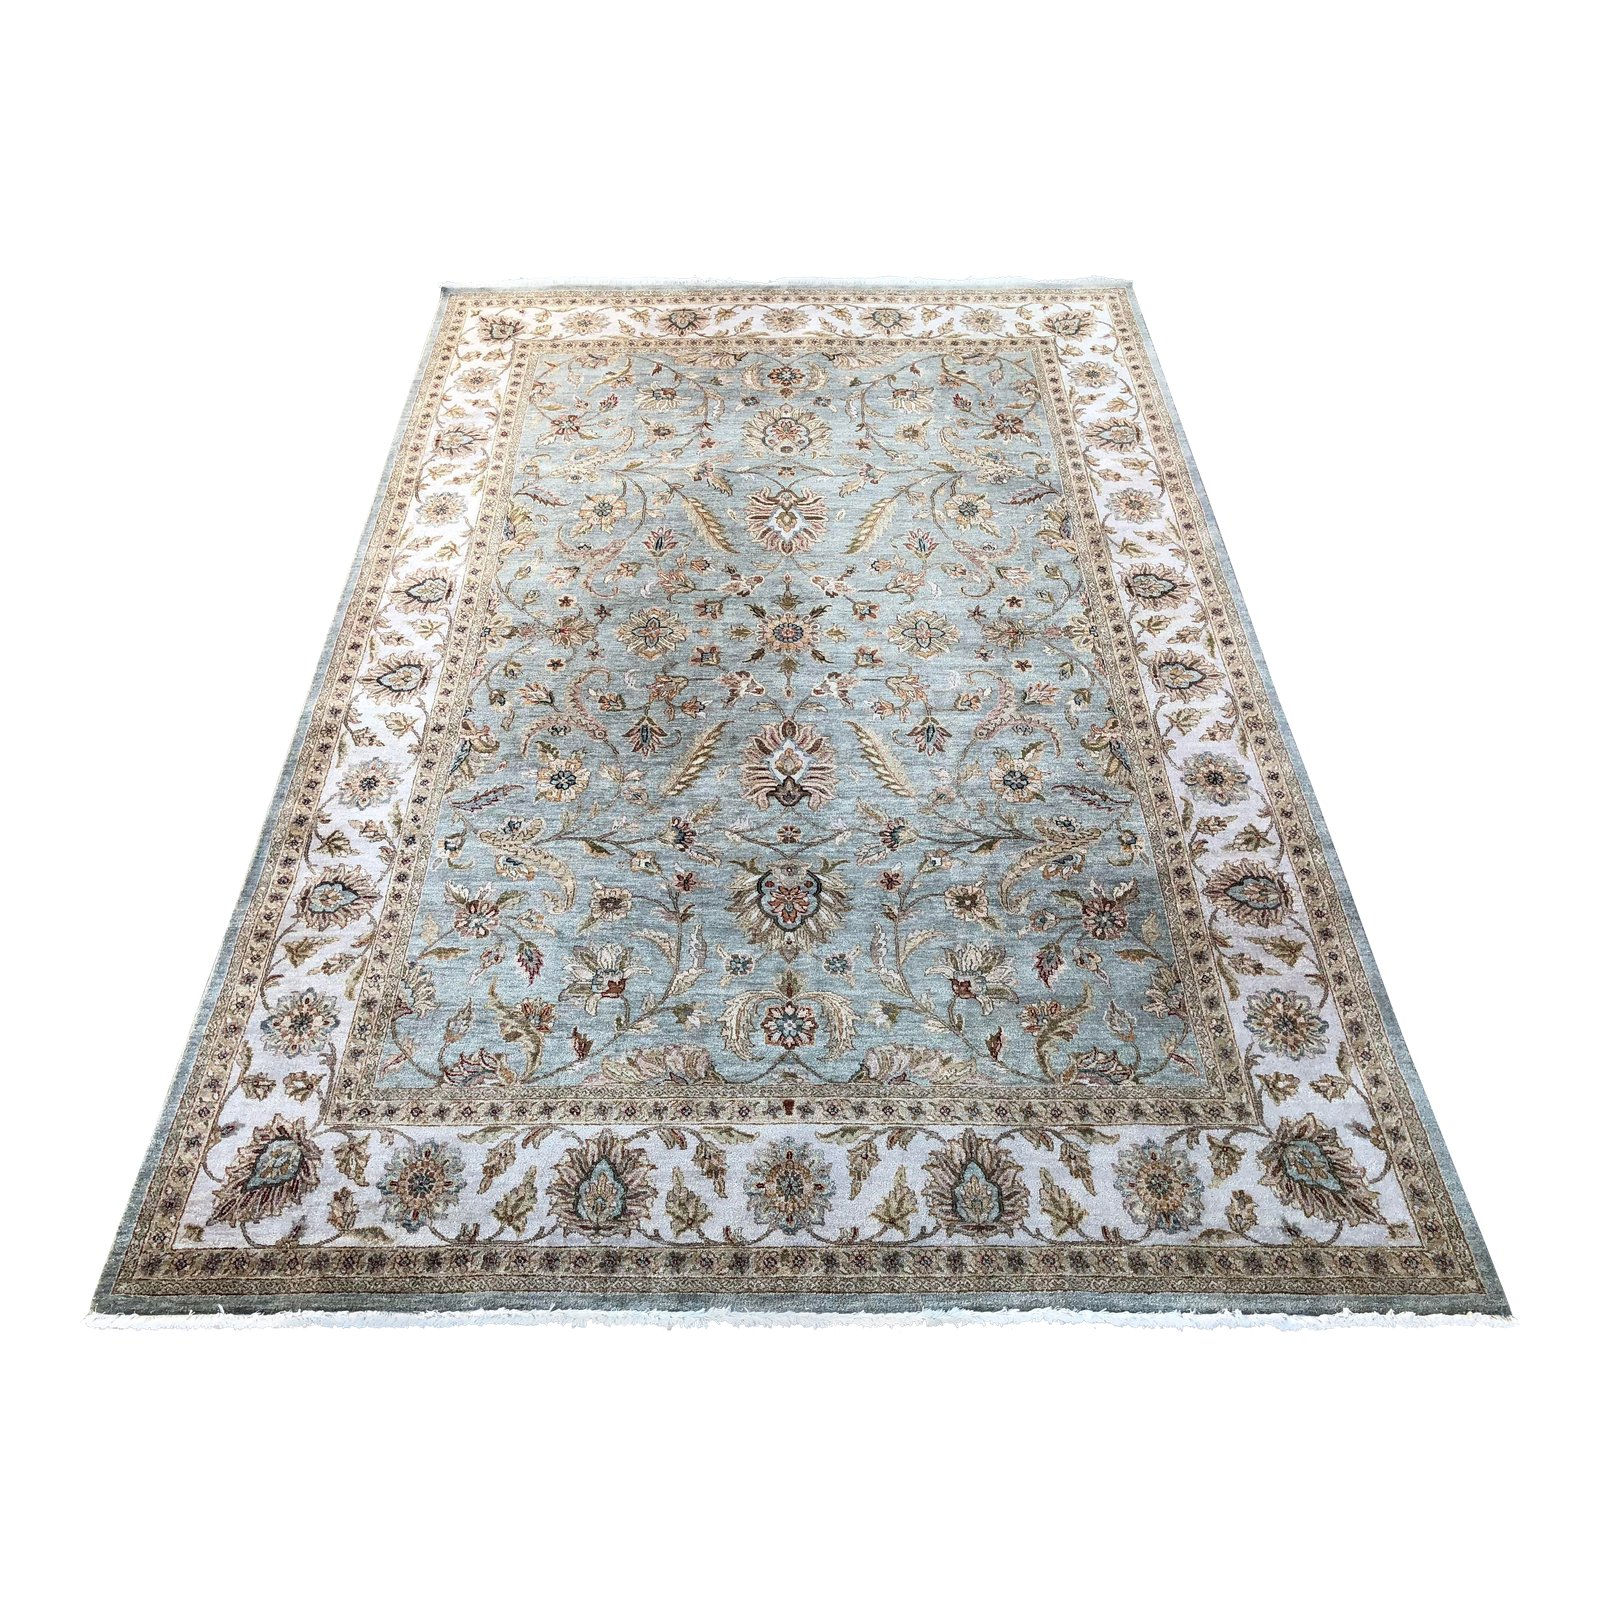 Ethan Allen Aqua And Ivory Persian Style Silk + Wool Rug